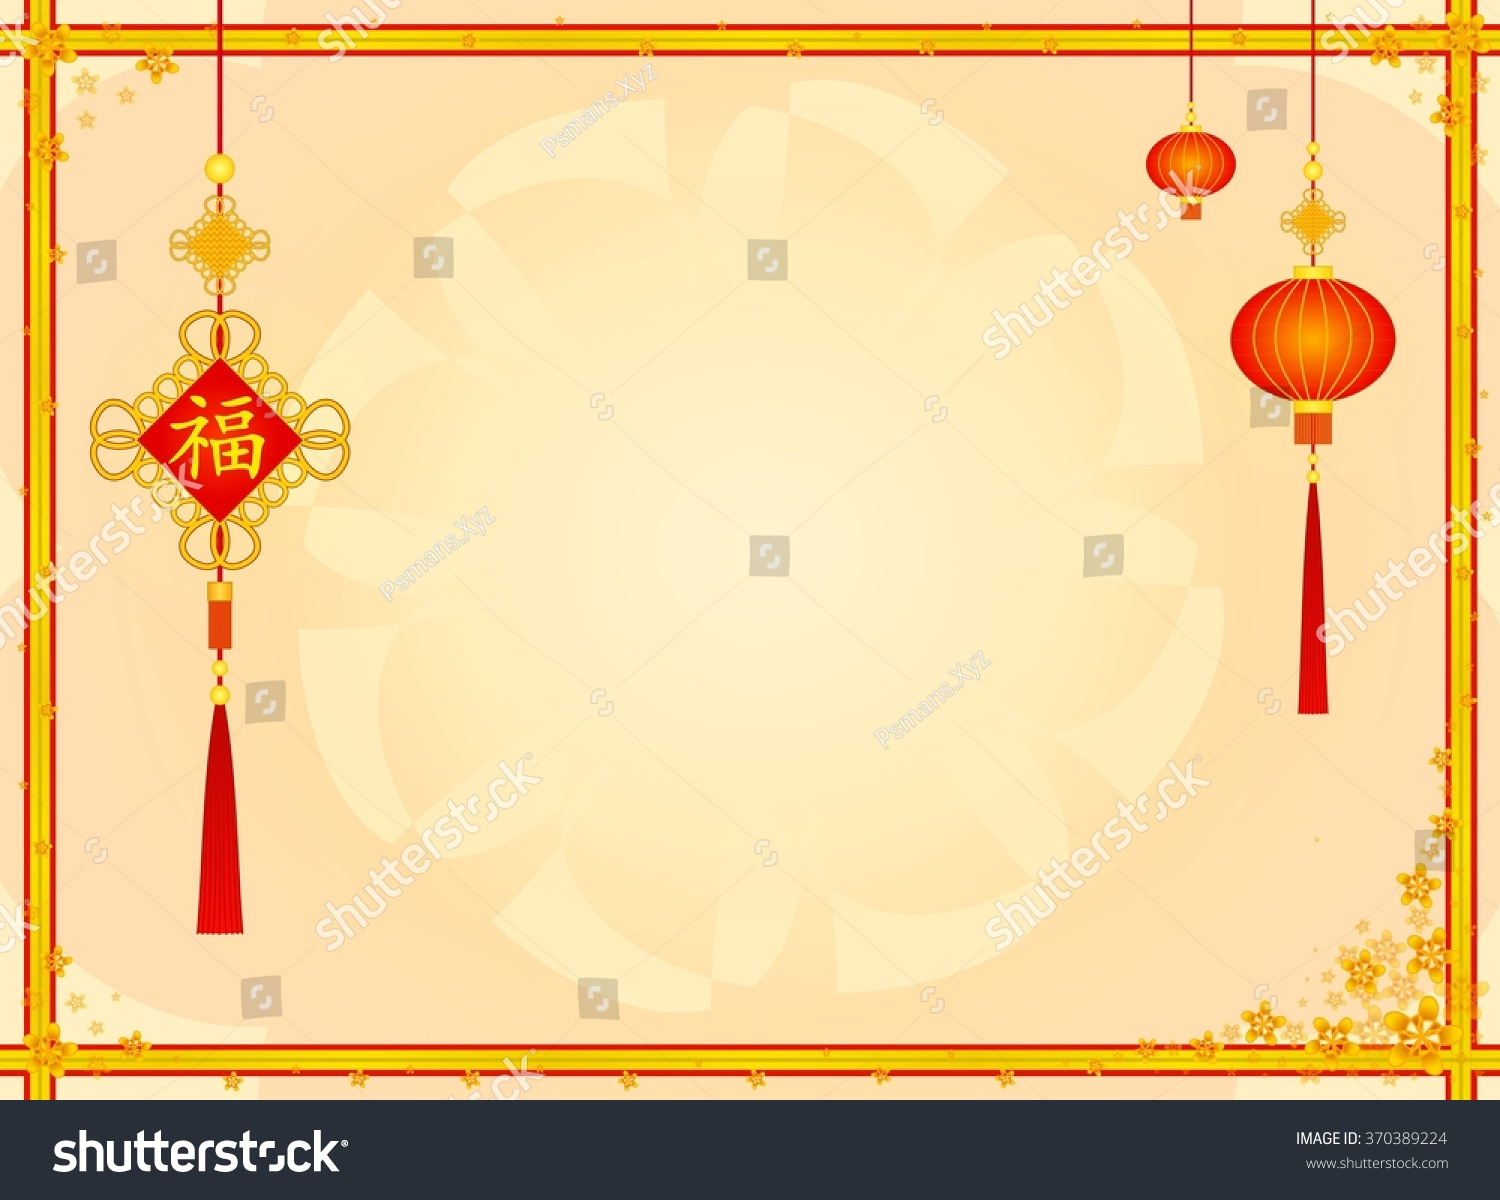 Blank Chinese Card Golden Borders Decorated Stock Illustration ...